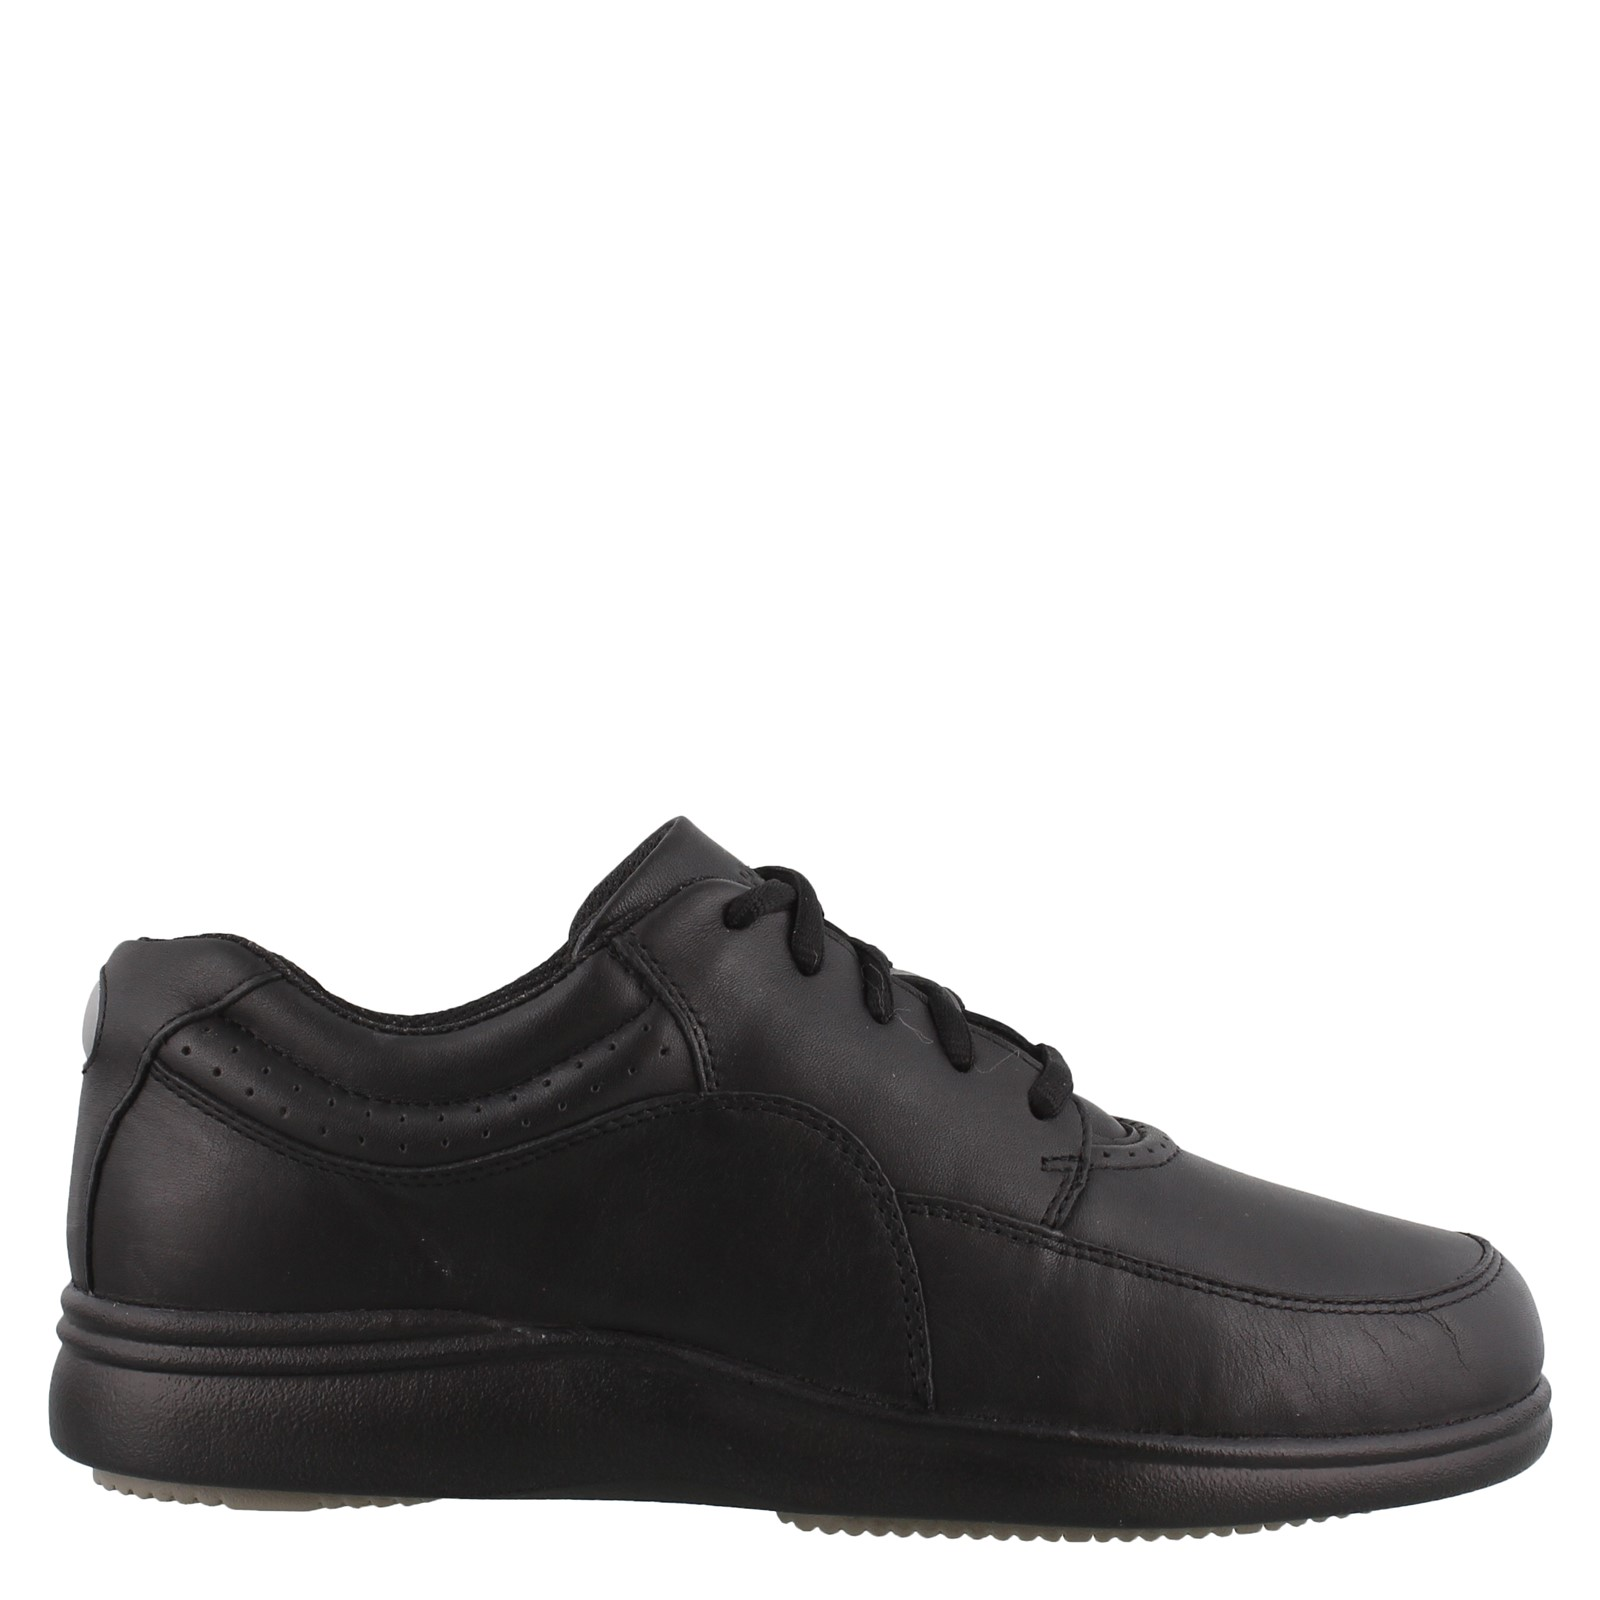 Women's Hush Puppies, Power Walker Lace Up